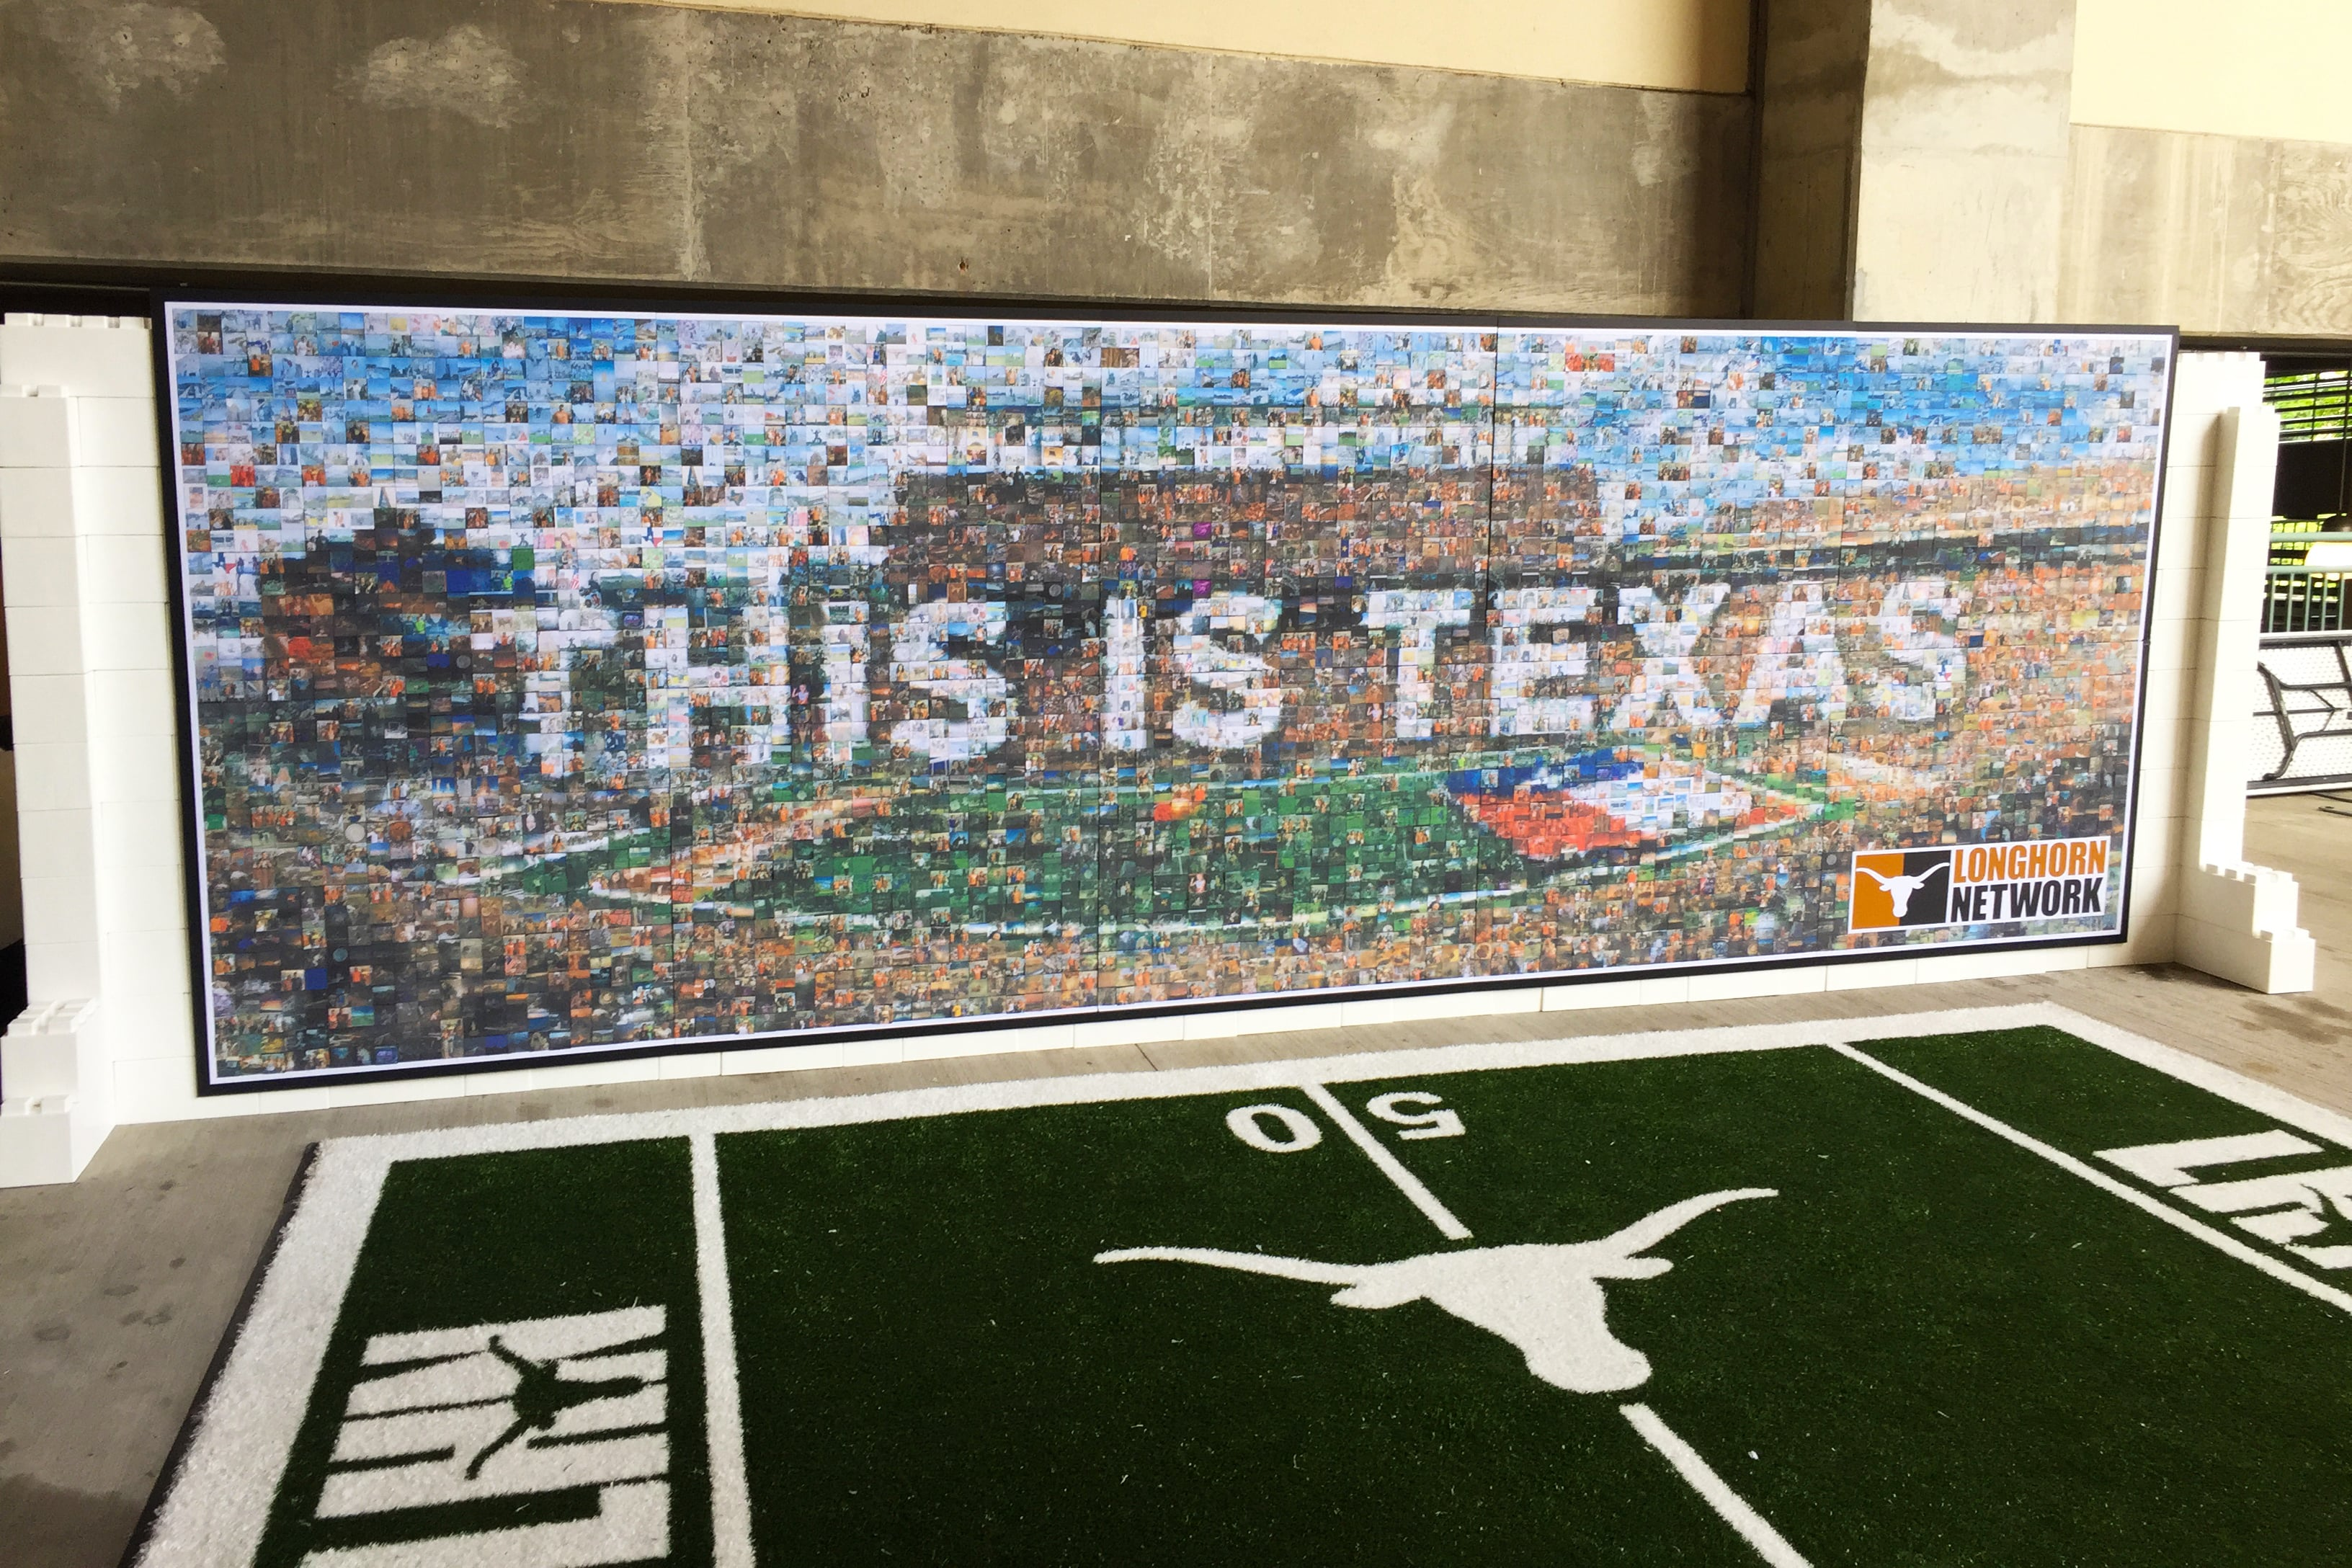 Texas Longhorns Orange-White Spring Game Live Print Mosaic